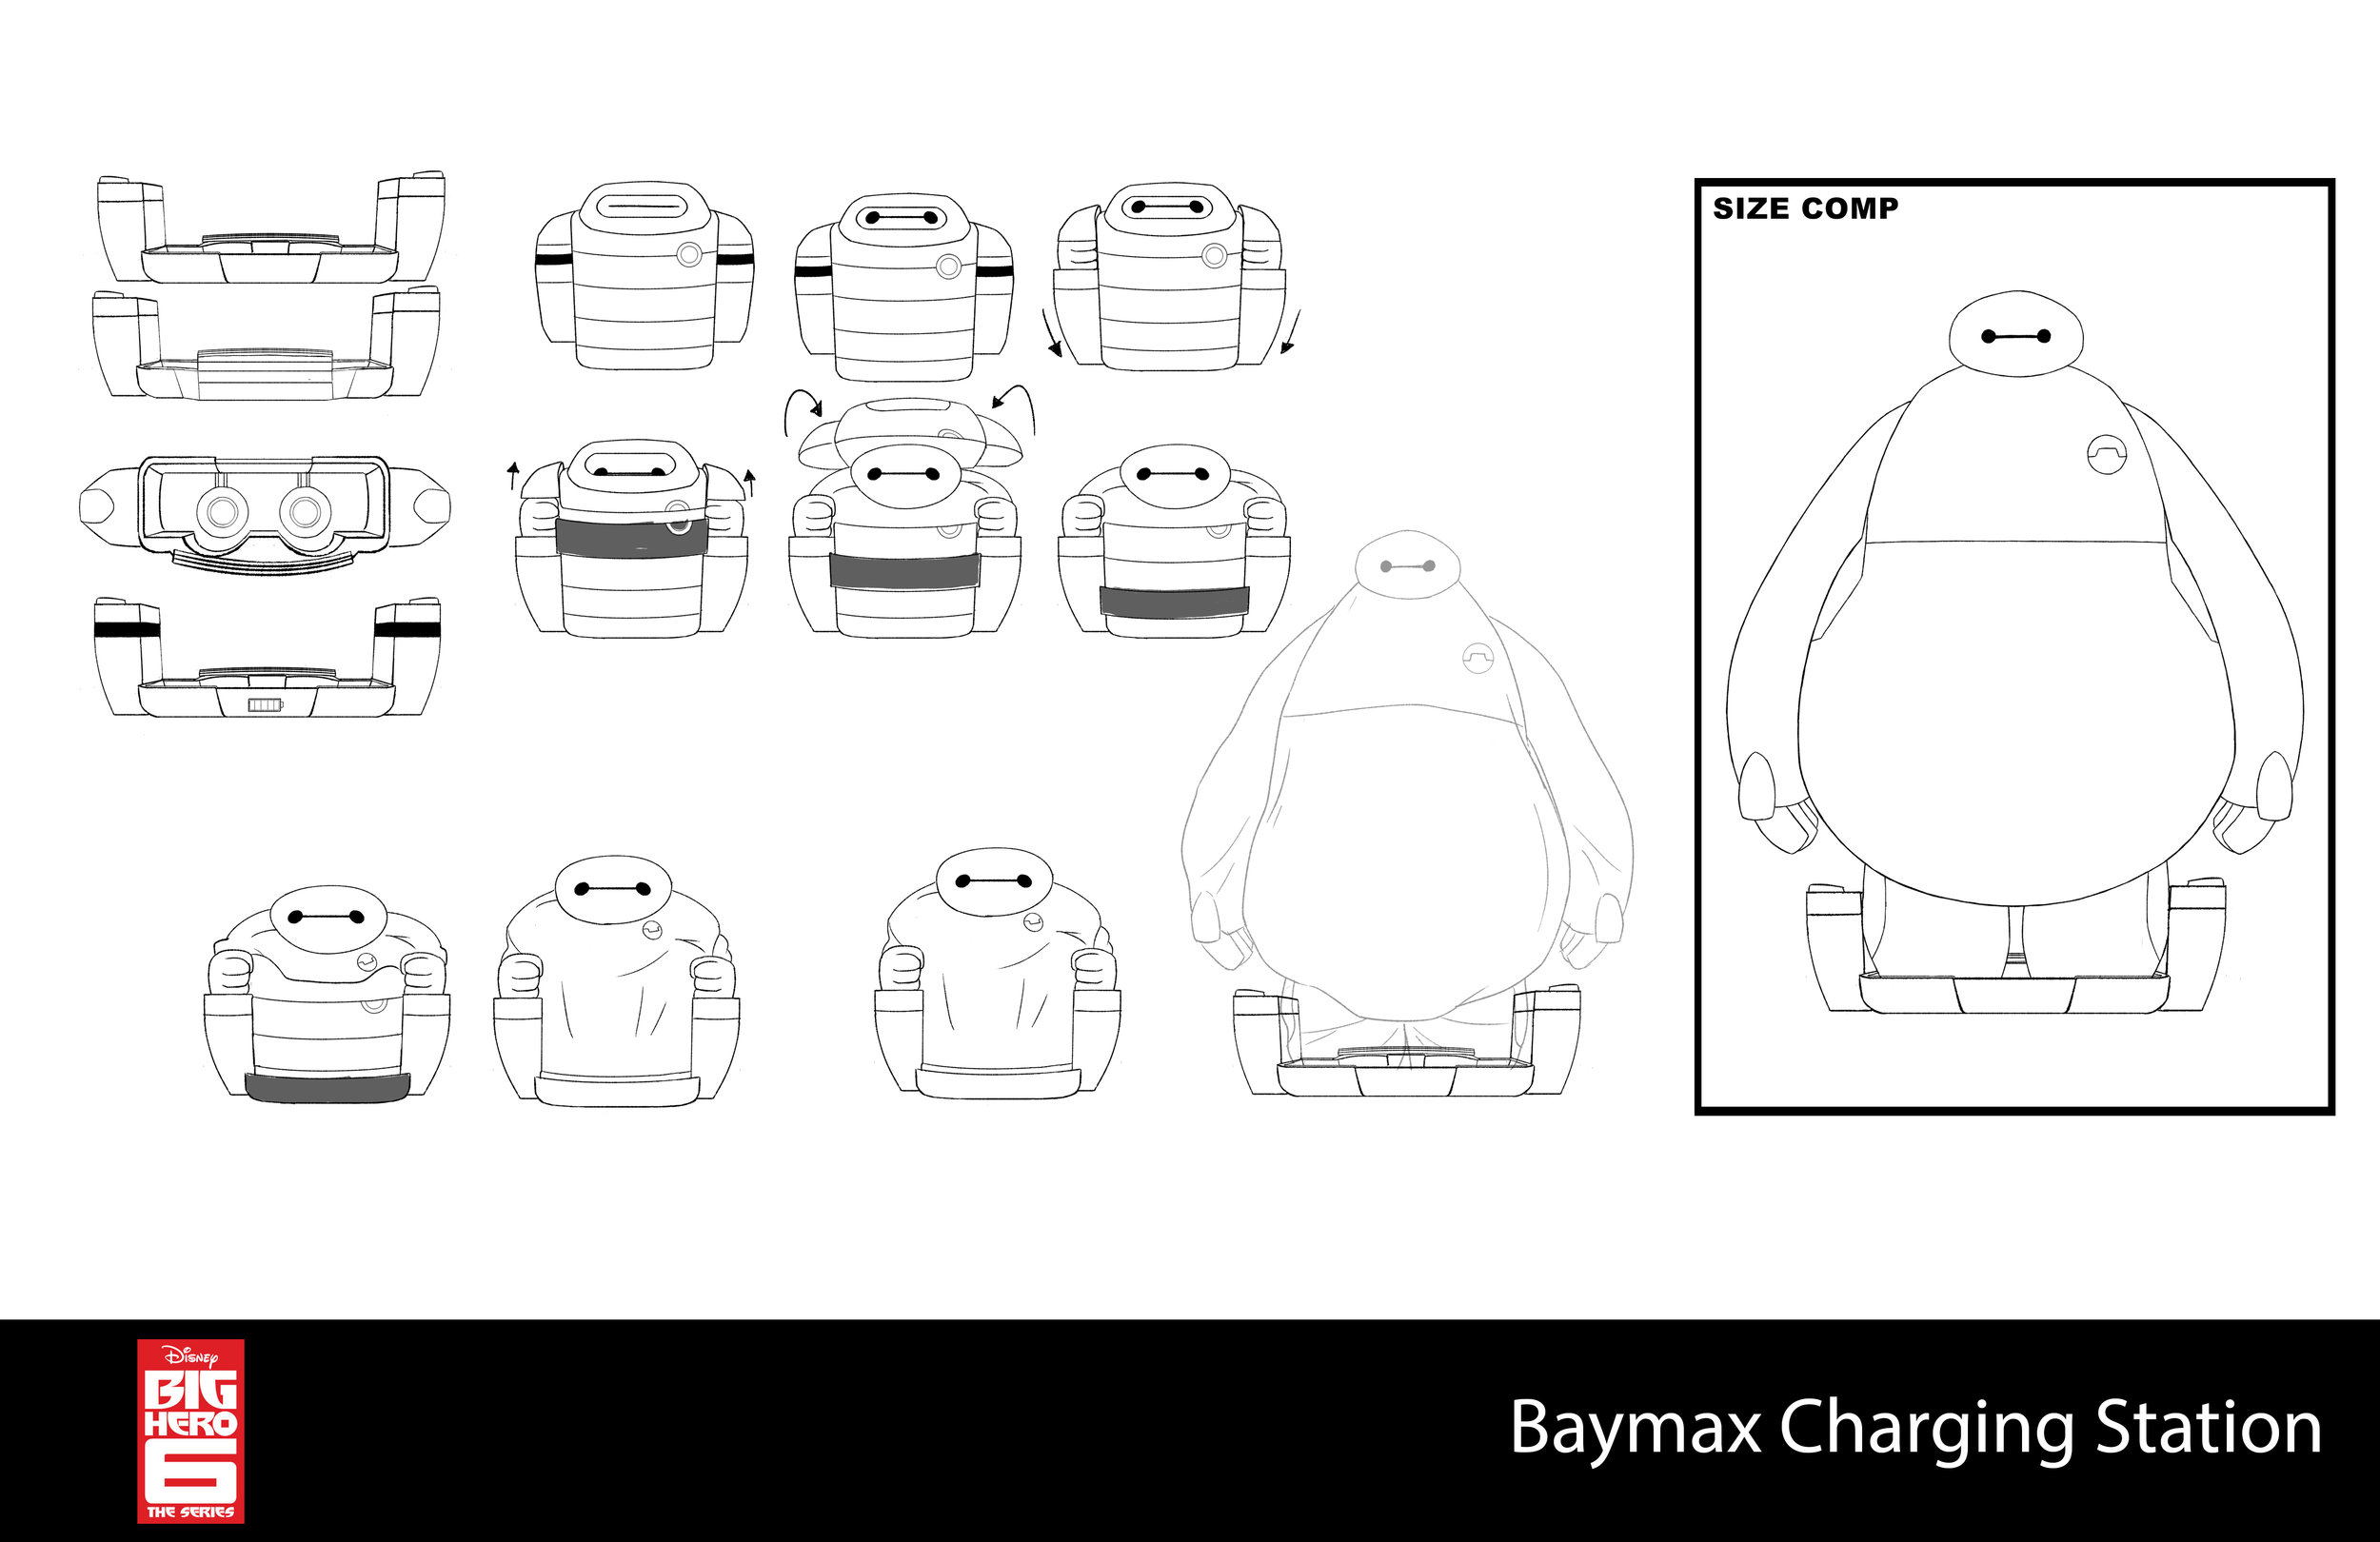 106_BaymaxChargingStation_R_V03_BS.jpg